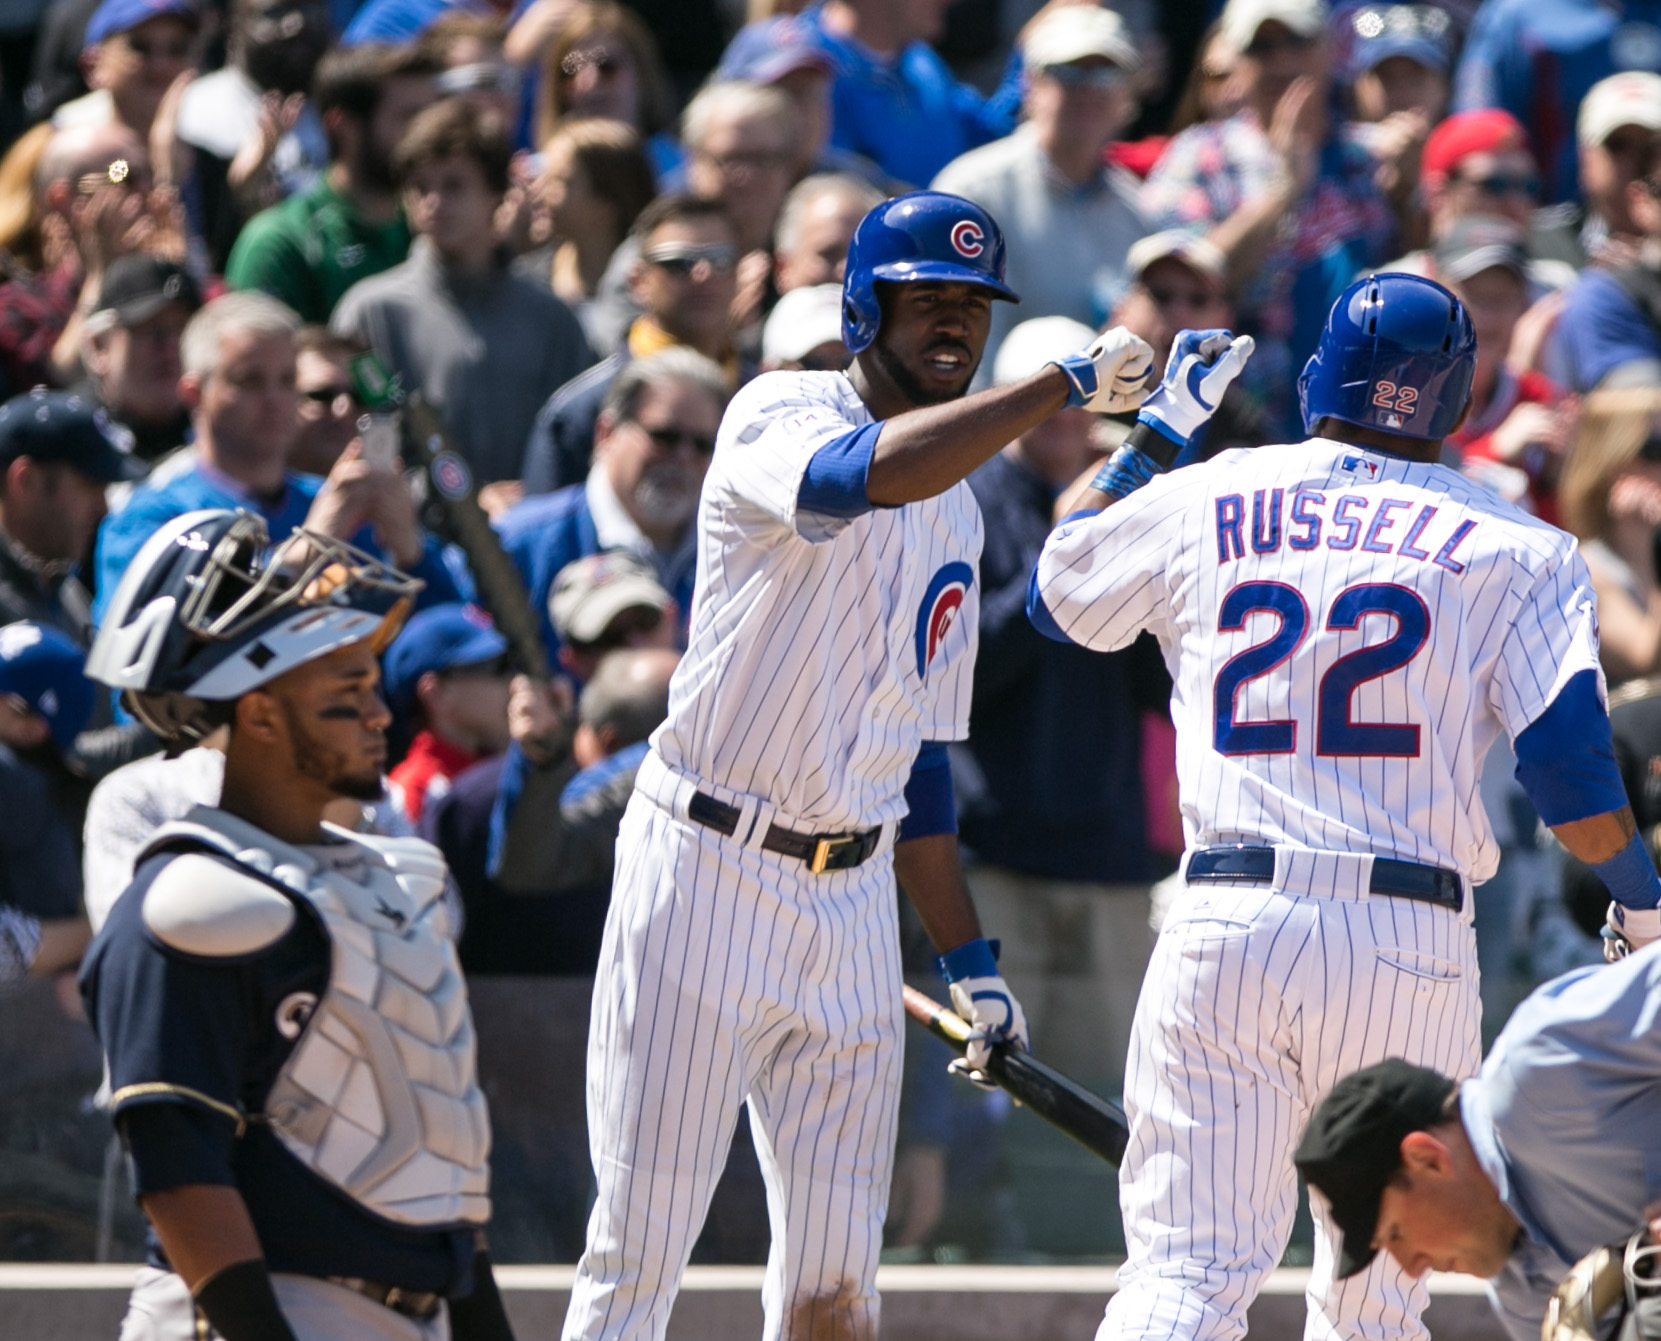 Chicago Cubs Addison Russell, right, is congratulated by Ricky Fowler after hitting his first major league home run in the third inning of a baseball game against the Milwaukee Brewers, Friday May 1, 2015, in Chicago. (AP Photo/Charles Cherney)